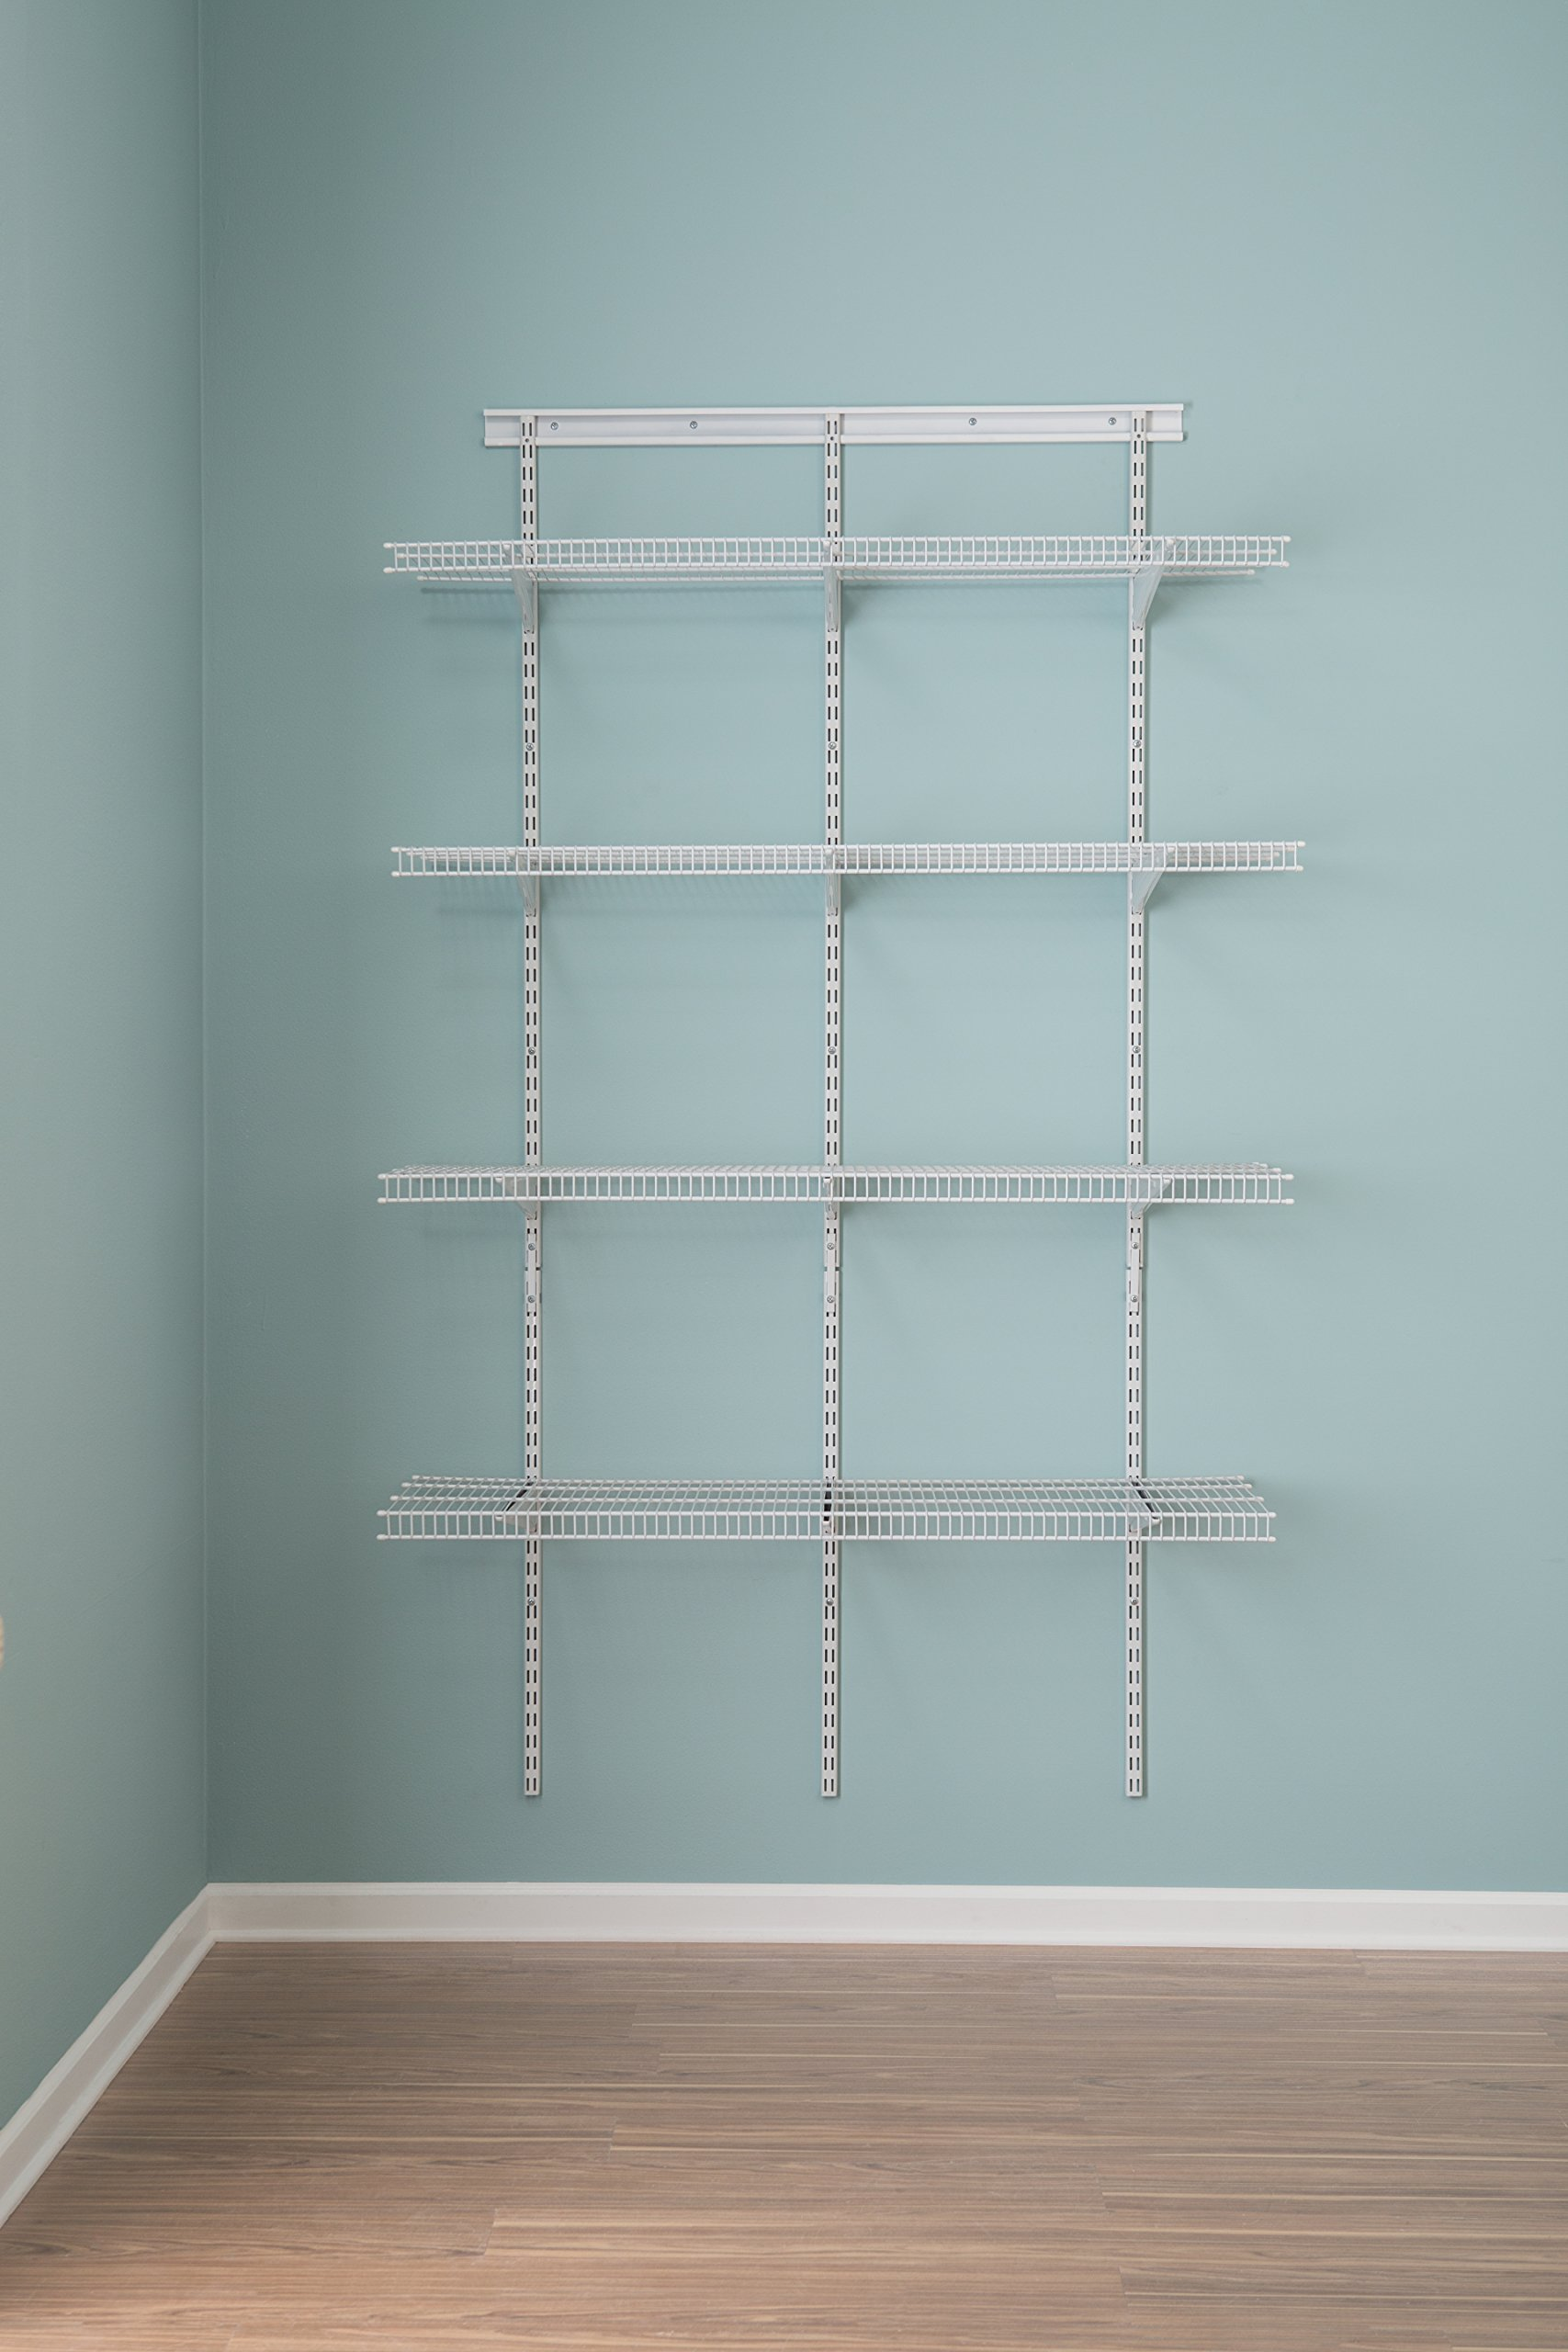 ClosetMaid 2845 ShelfTrack 4ft. Pantry Organizer Kit, White by ClosetMaid (Image #3)